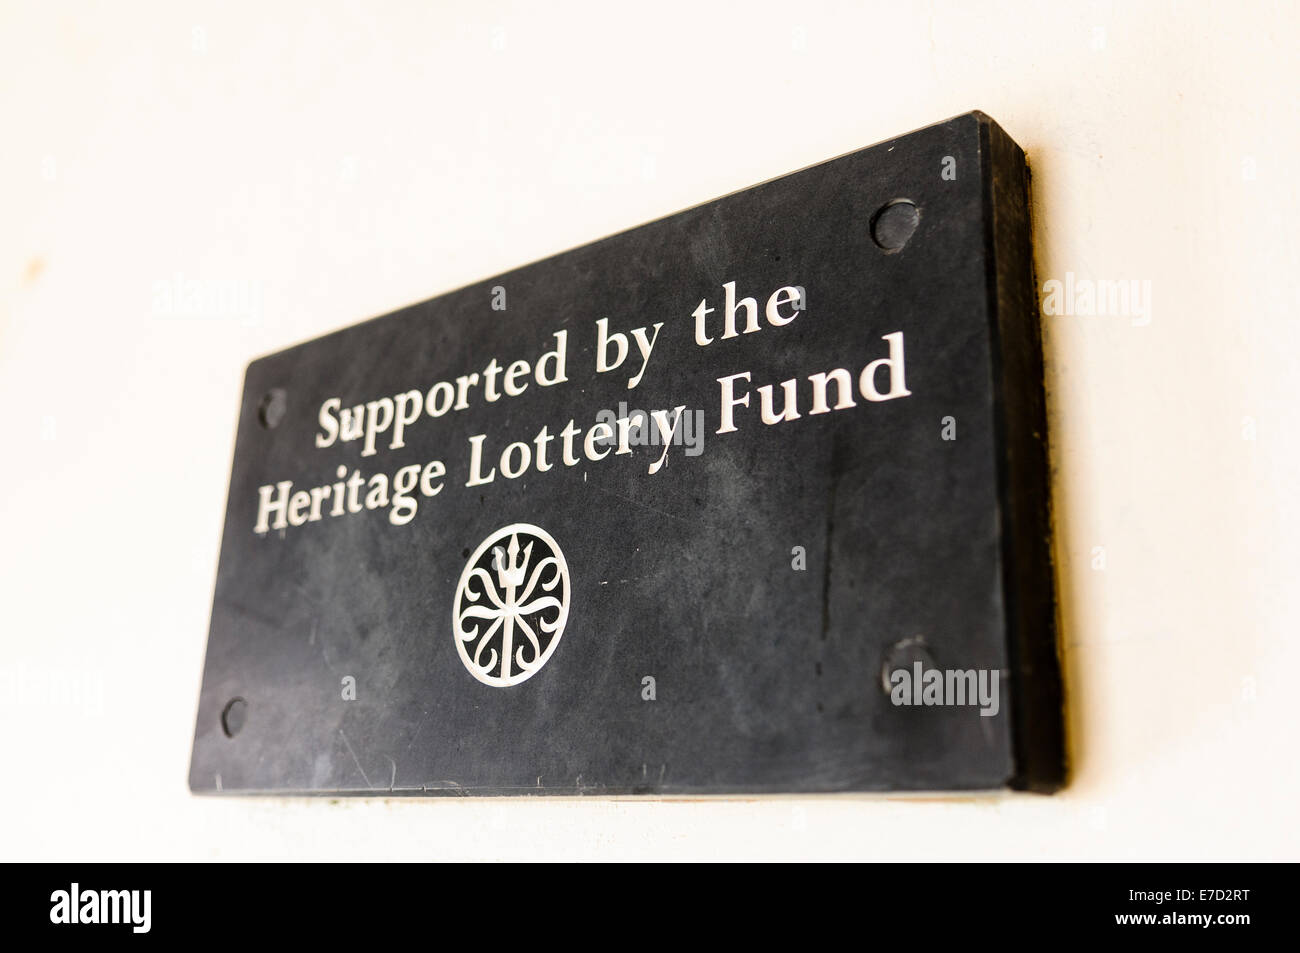 Plaque in a building which has received funding from the Heritage Lottery Fund - Stock Image